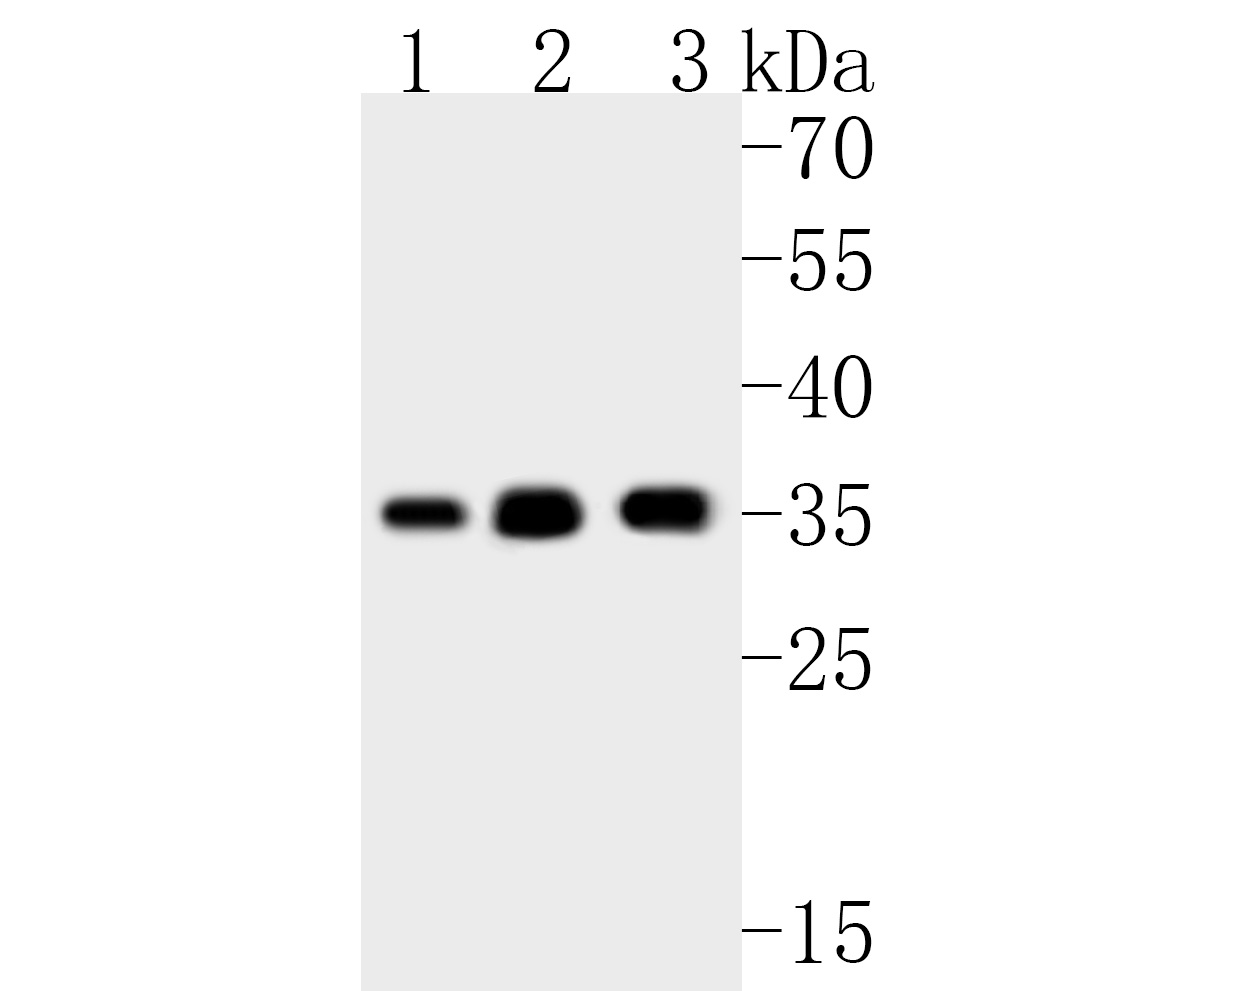 Western blot analysis of RRP42 on different lysates. Proteins were transferred to a PVDF membrane and blocked with 5% BSA in PBS for 1 hour at room temperature. The primary antibody (ET7111-13, 1/1,000) was used in 5% BSA at room temperature for 2 hours. Goat Anti-Rabbit IgG - HRP Secondary Antibody (HA1001) at 1:5,000 dilution was used for 1 hour at room temperature.<br /> Positive control: <br /> Lane 1: K562 cell lysate<br /> Lane 2: Jurkat cell lysate<br /> Lane 3: U937 cell lysate